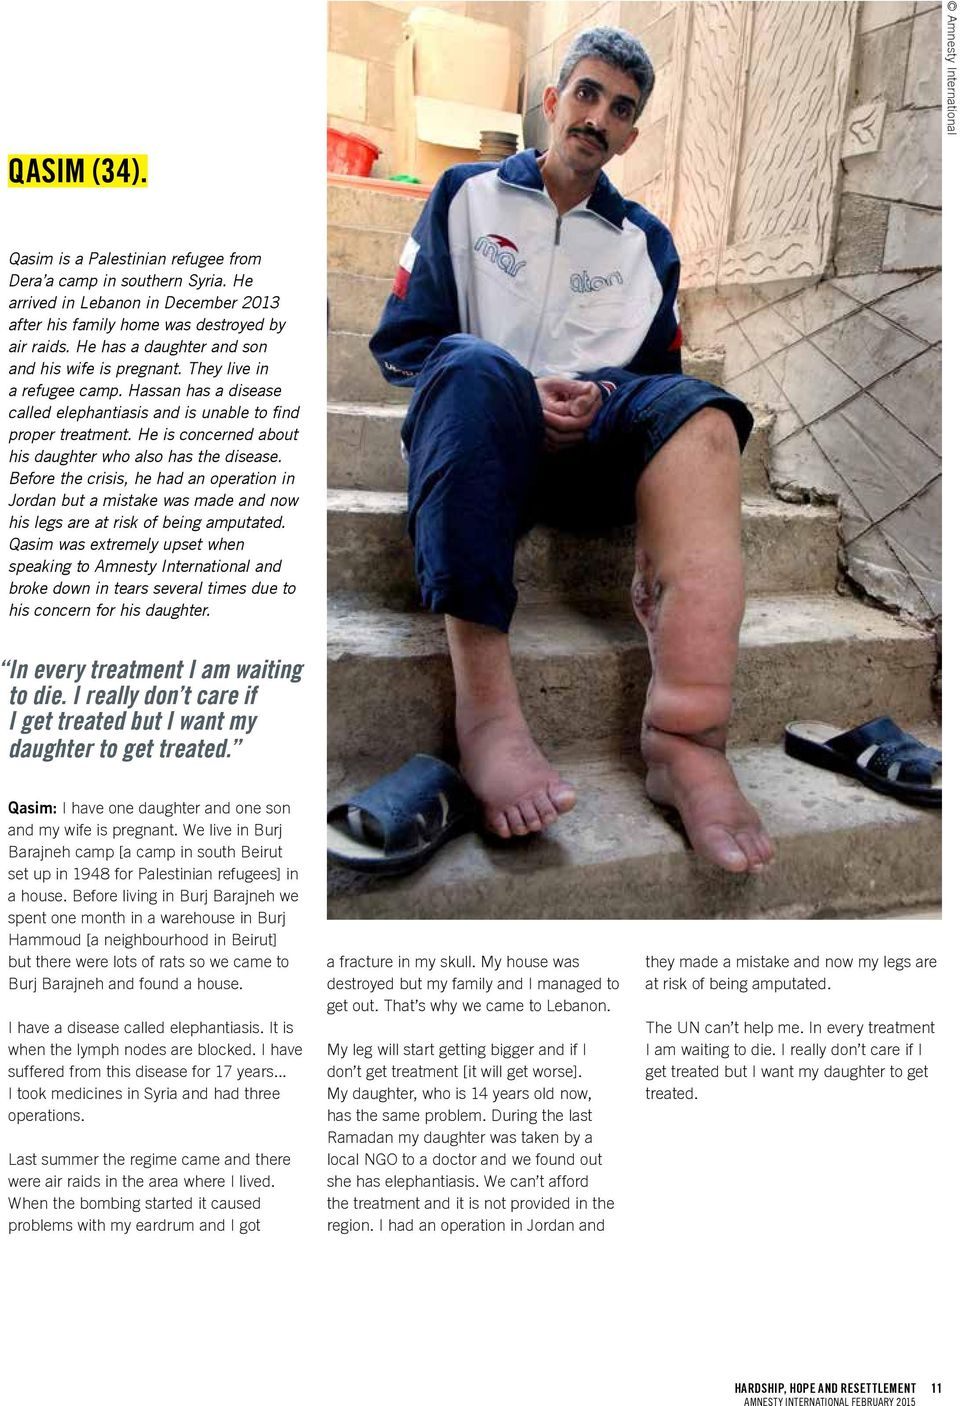 He is concerned about his daughter who also has the disease. Before the crisis, he had an operation in Jordan but a mistake was made and now his legs are at risk of being amputated.